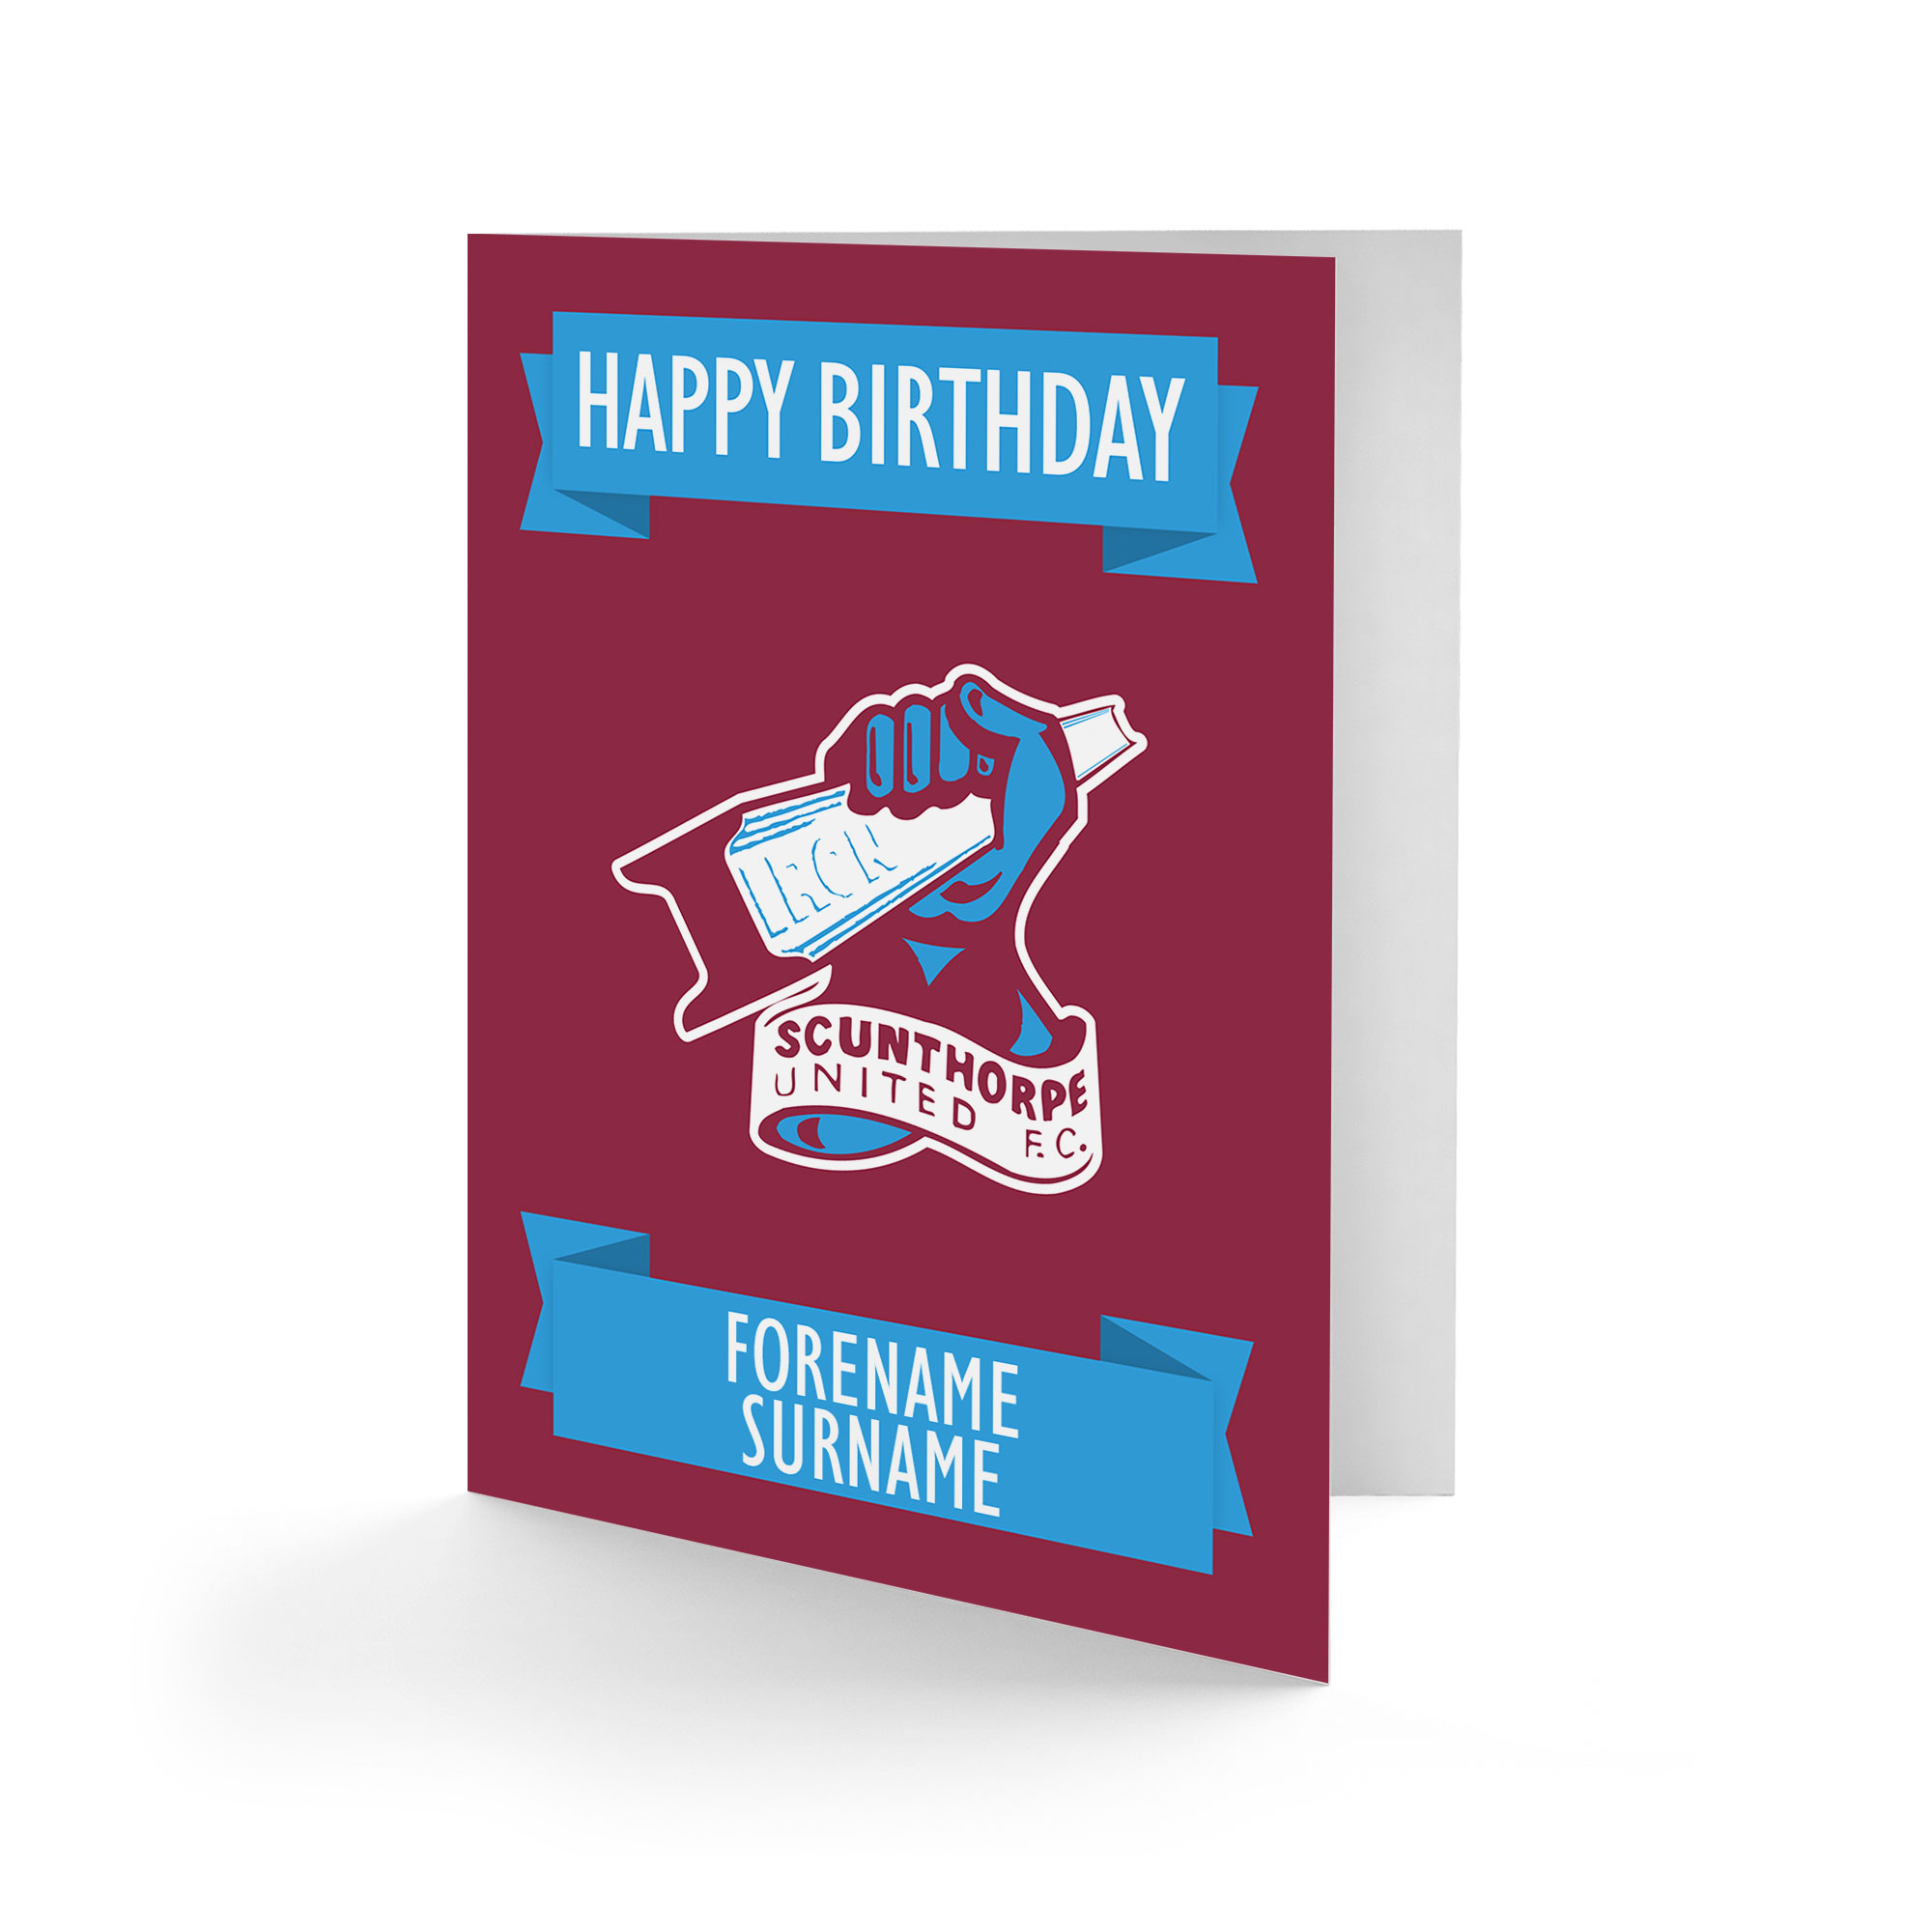 Scunthorpe United FC Crest Birthday Card